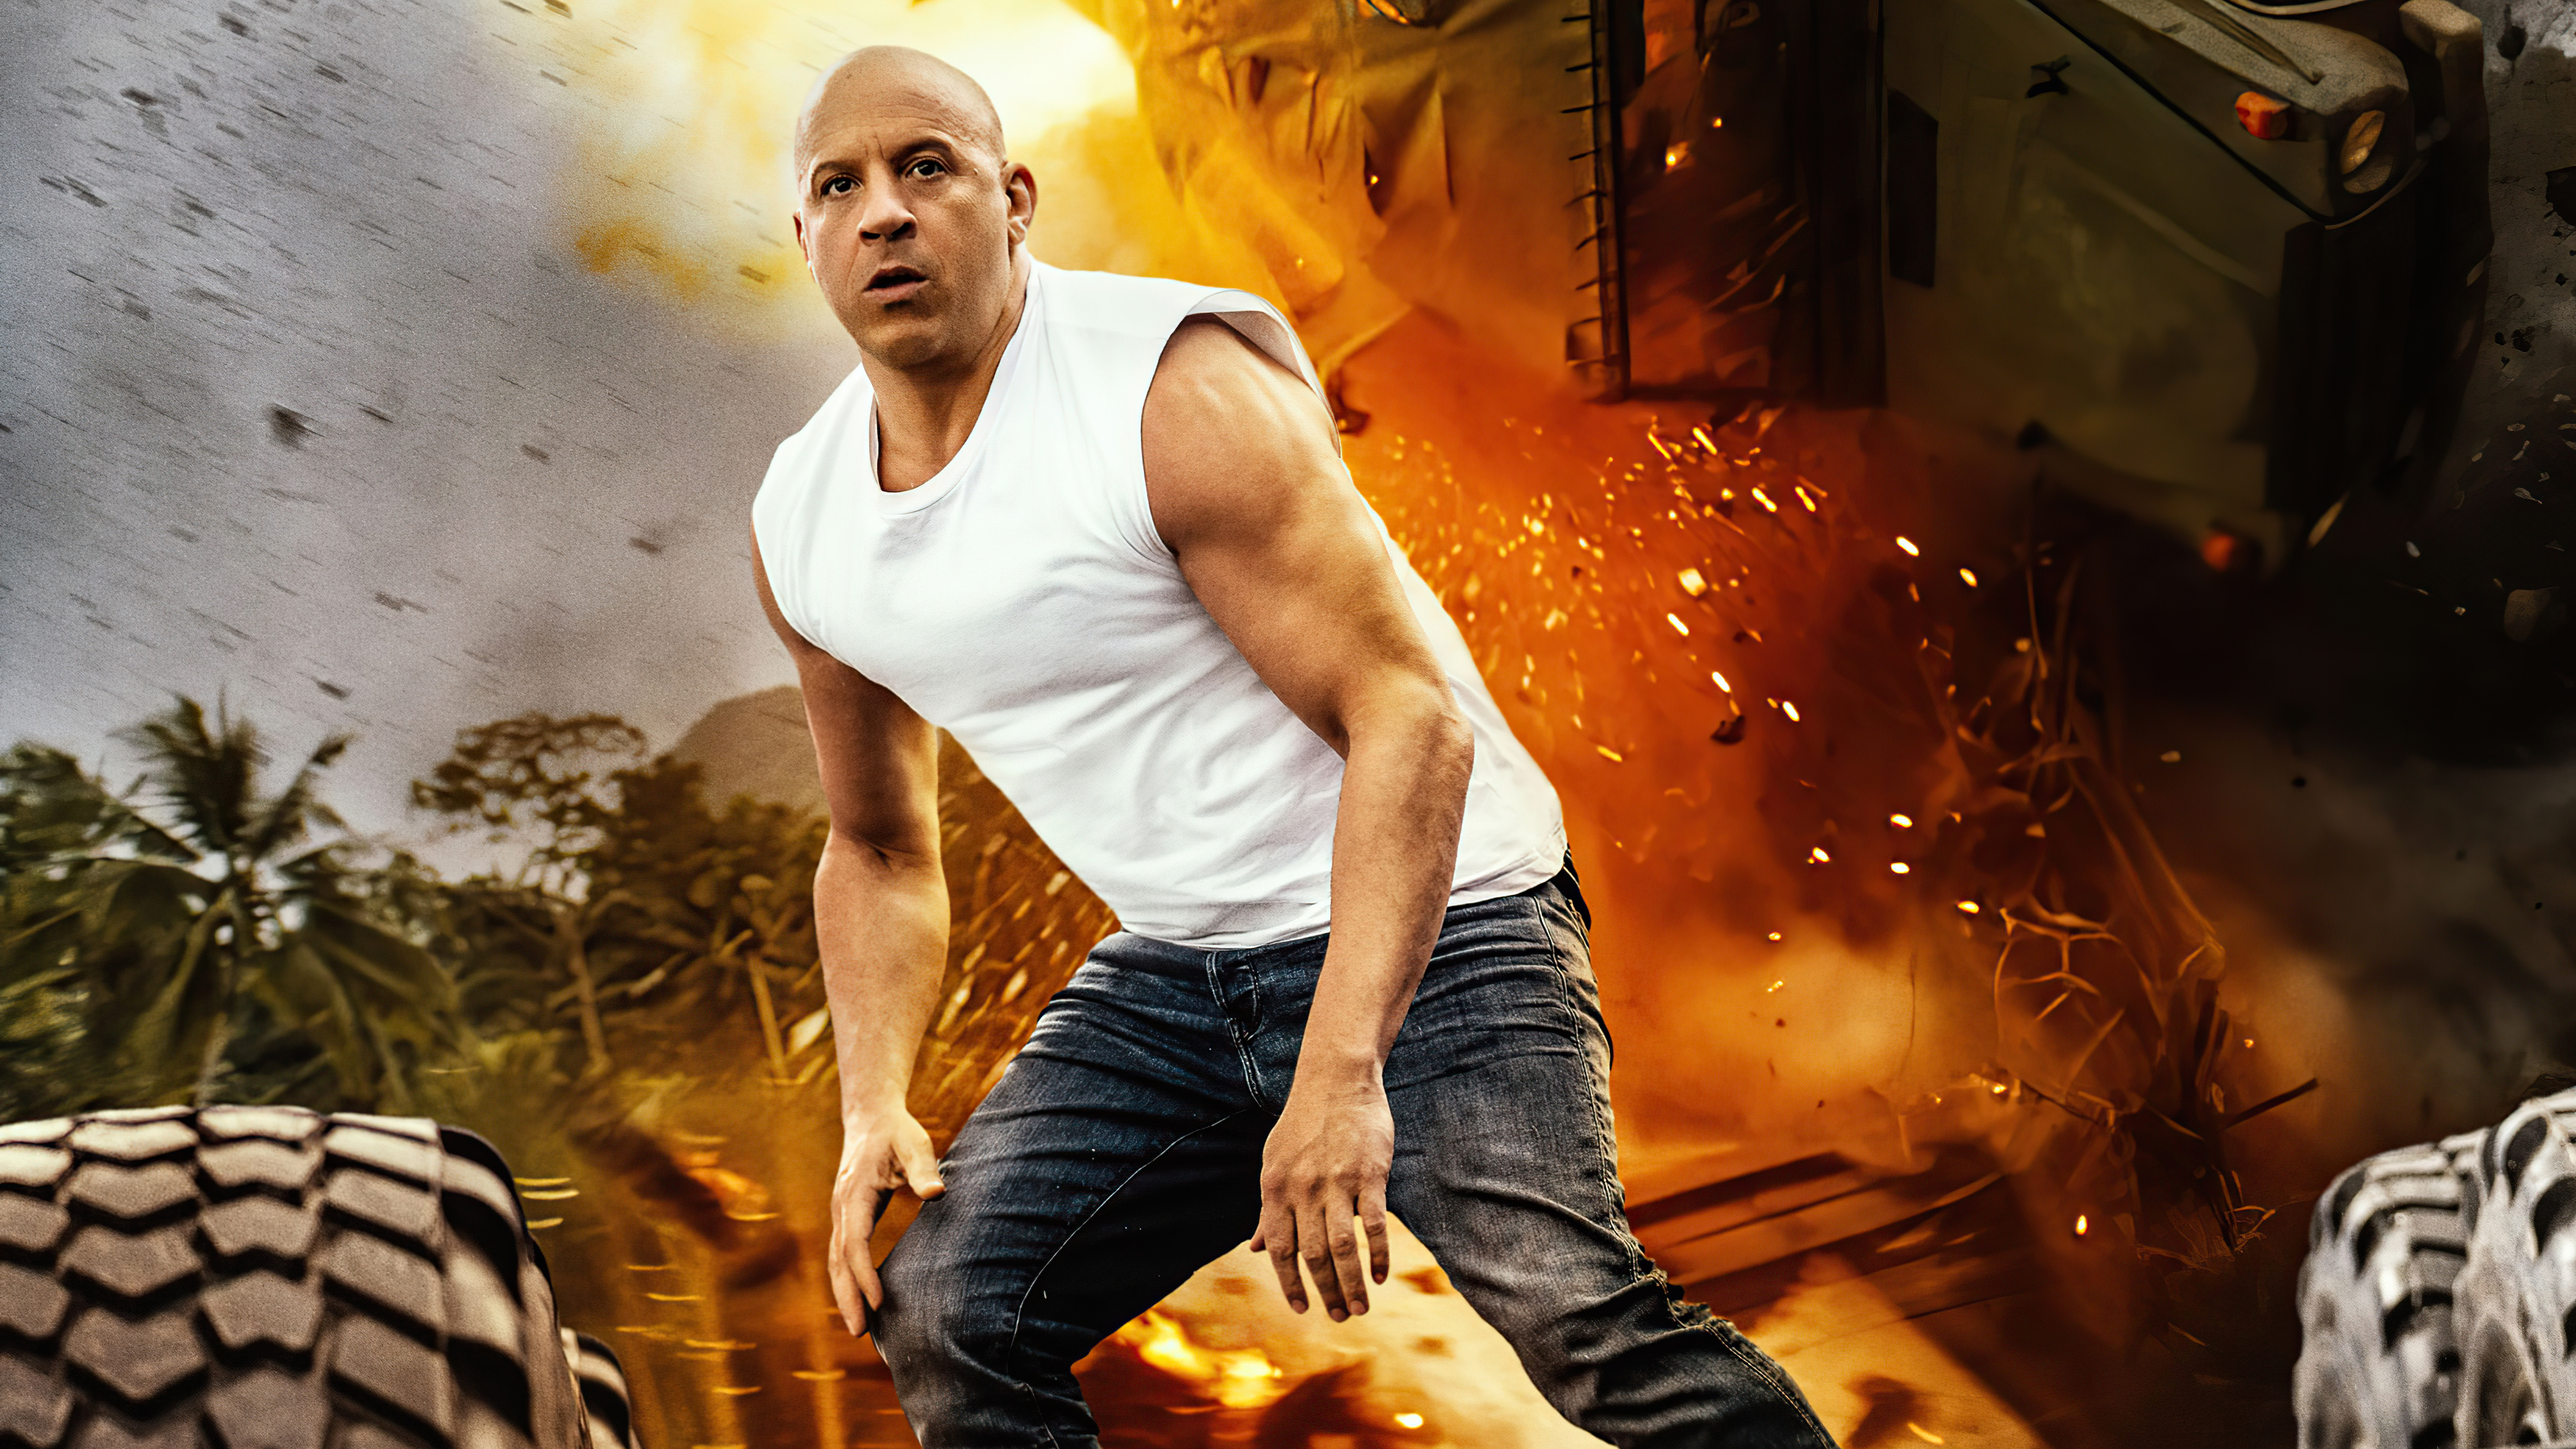 Wallpaper Vin Diesel as Dominic Toretto in Fast and furious 9 2021